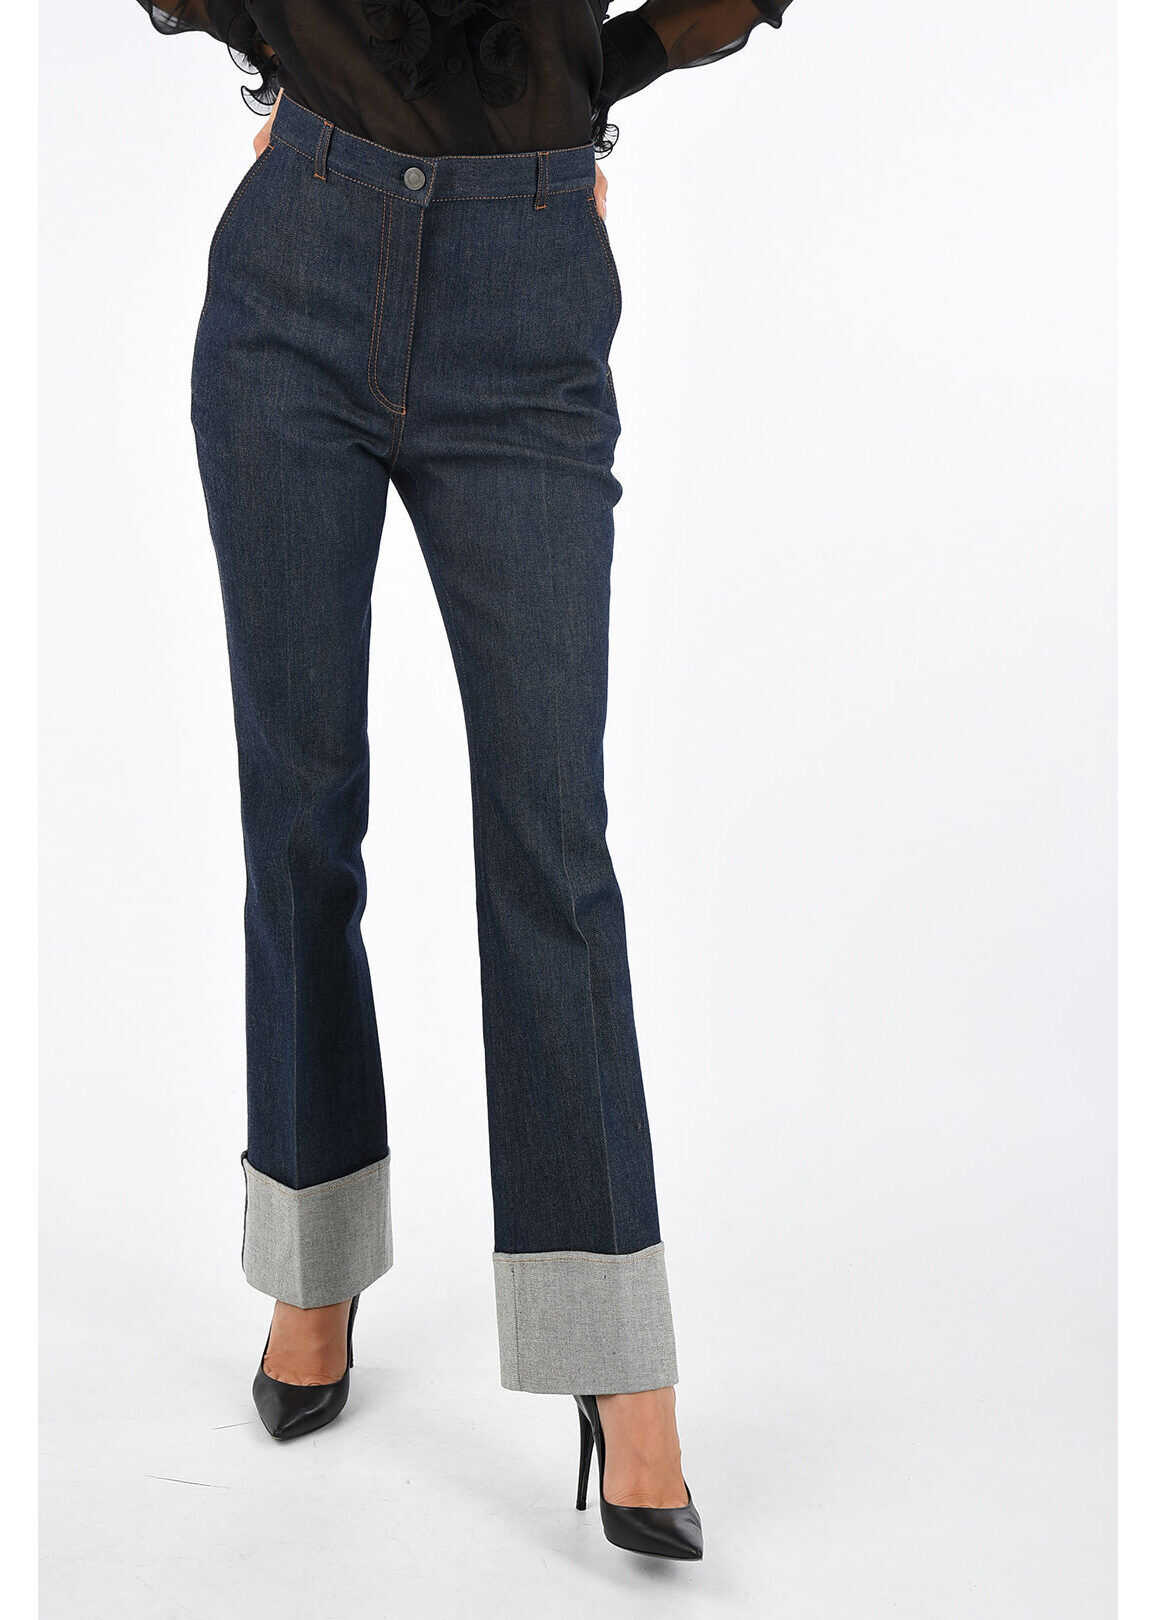 23cm Denim Stretch Jeans thumbnail